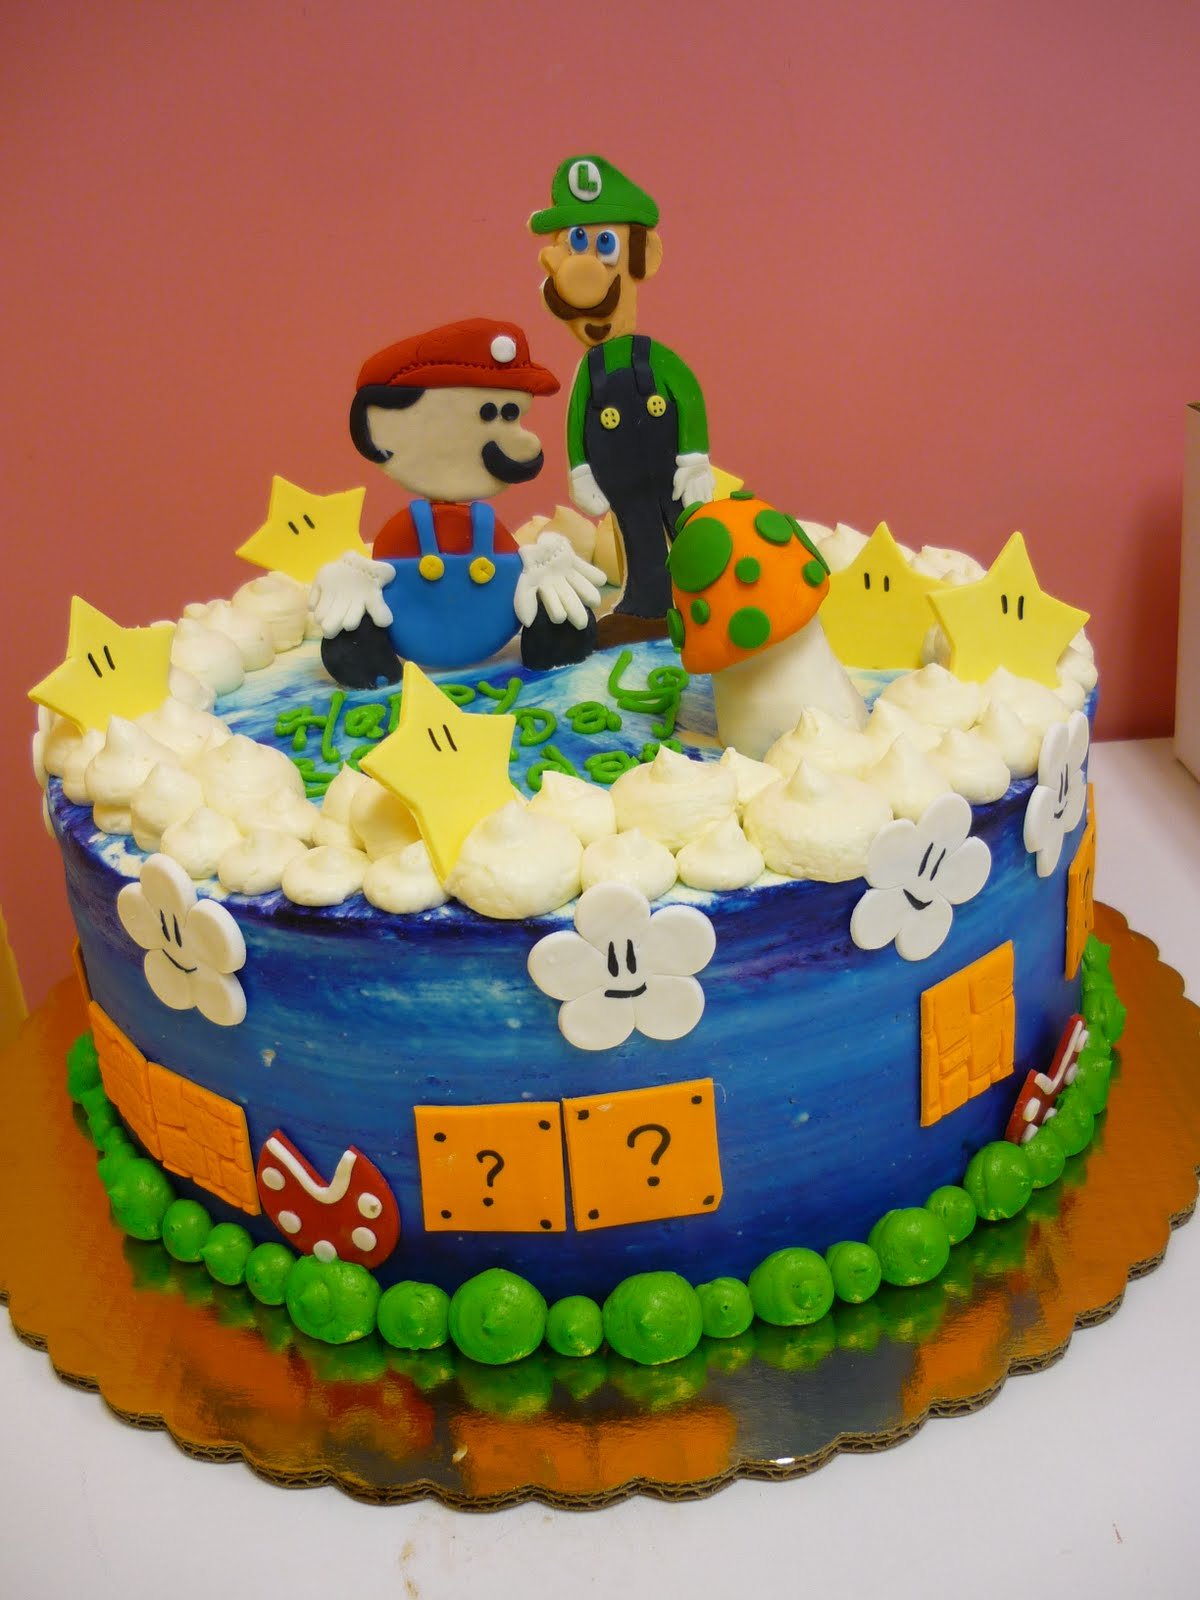 Artisan Bake Shop Kids Buttercream Birthday Cakes Nintendo Super